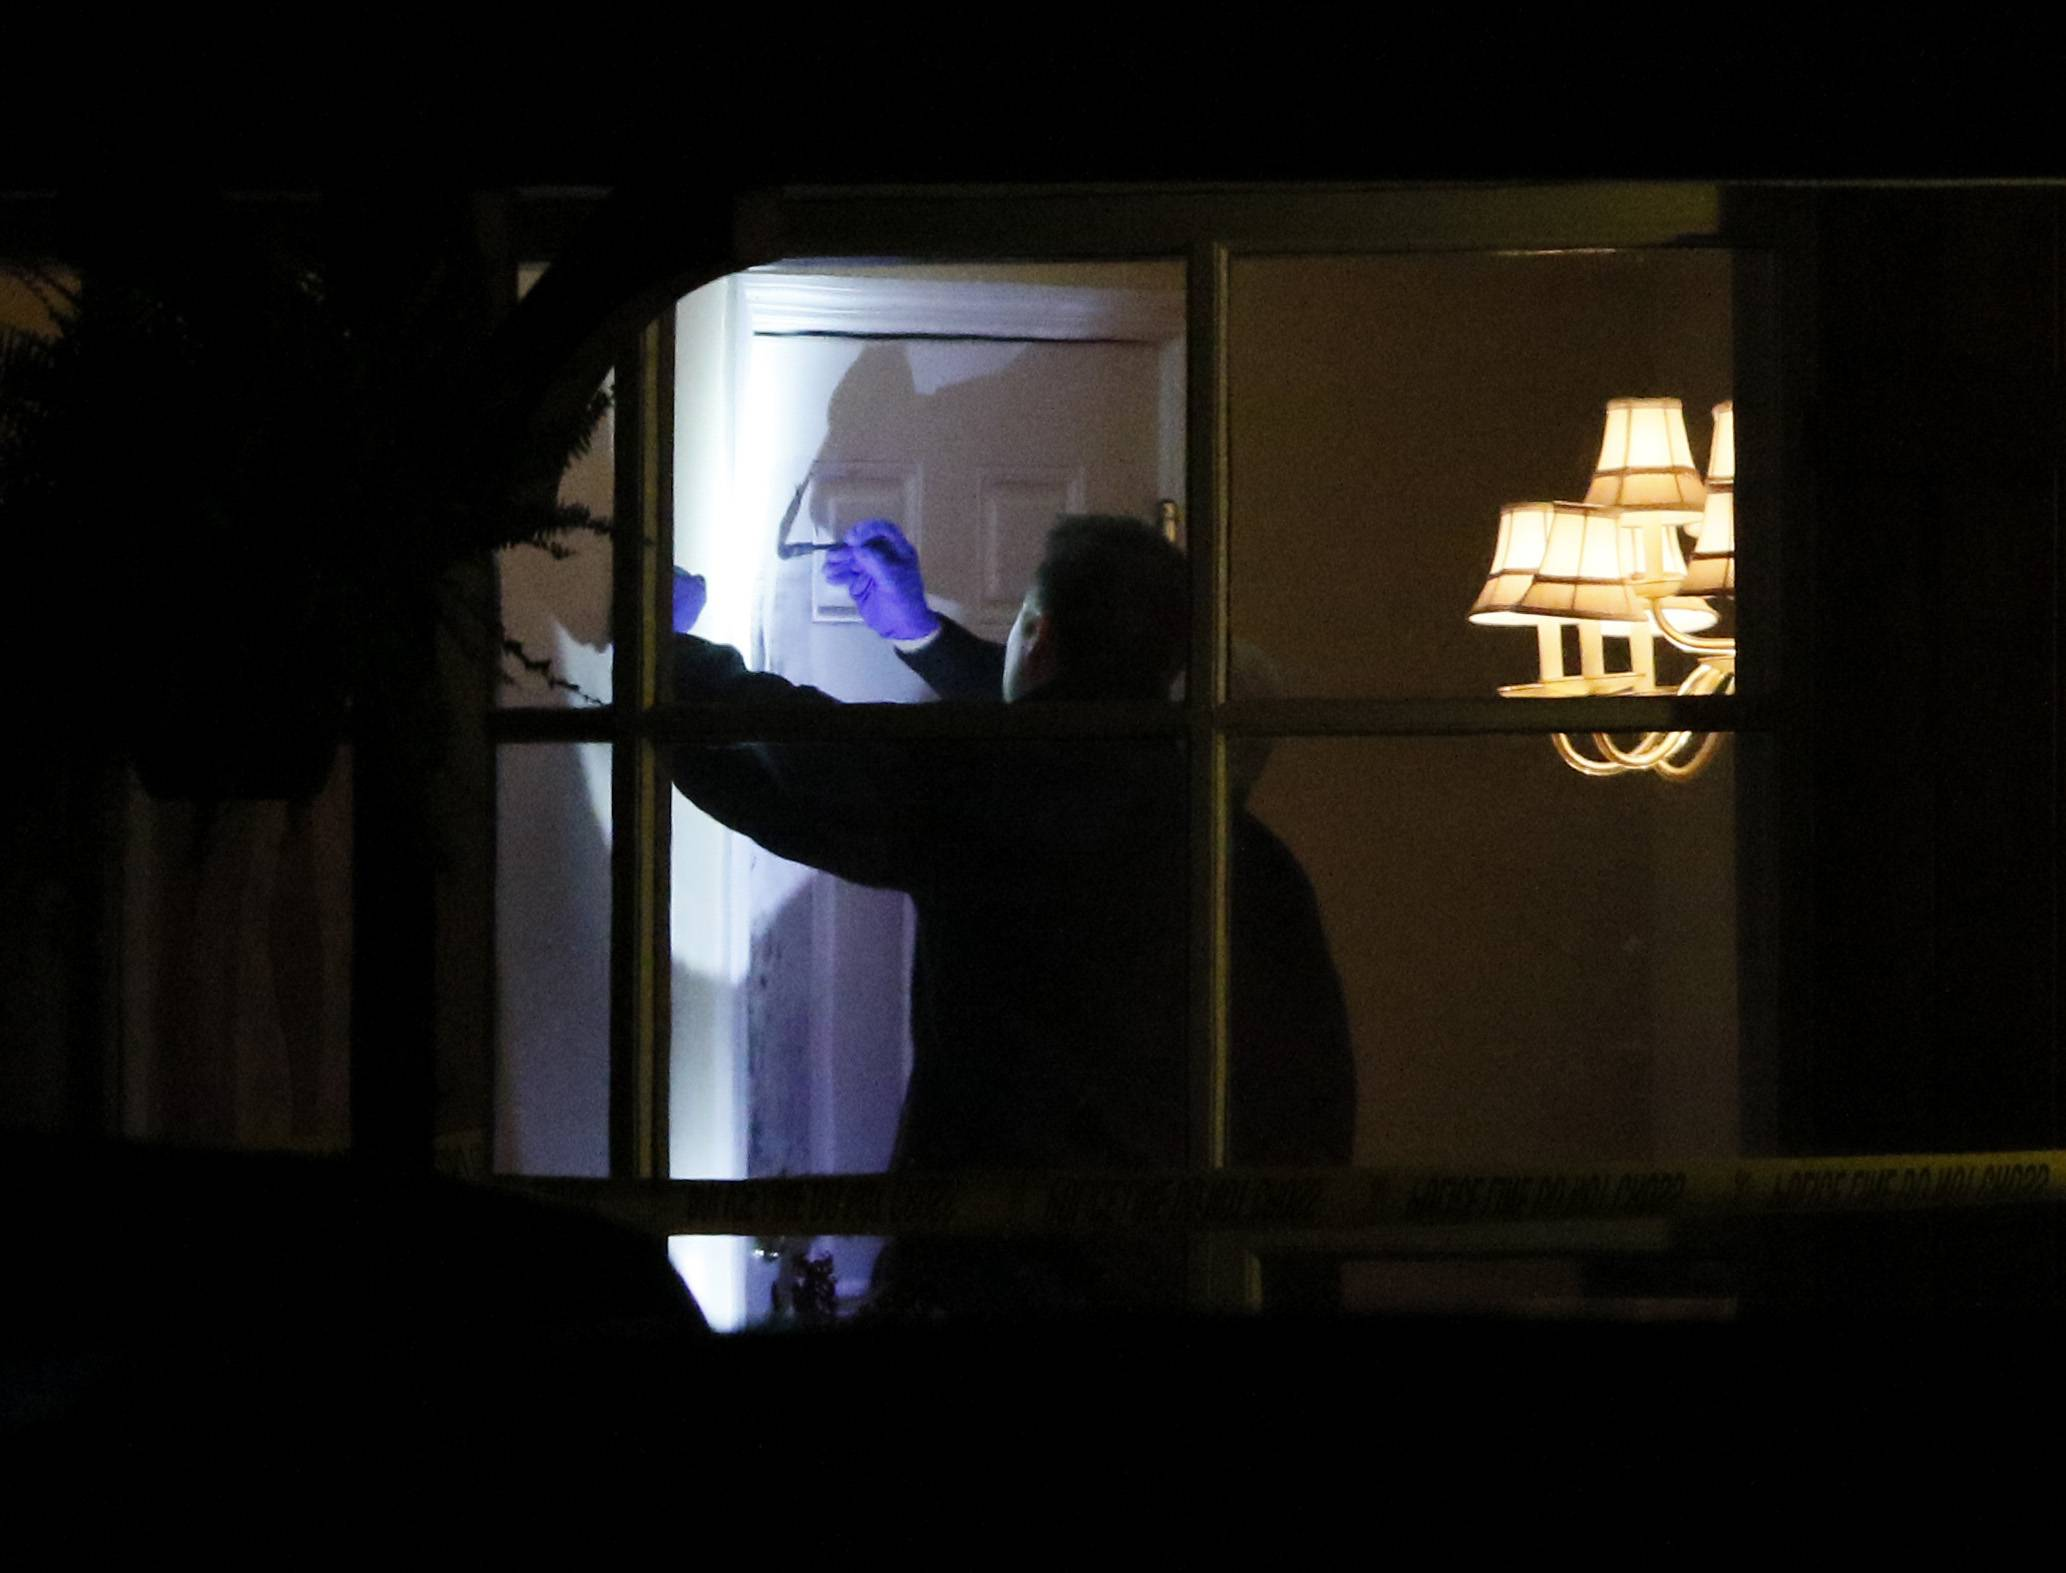 Hinsdale Police gather evidence in a home on the west side of town across from the train station where a 50-year-old woman identified as Andrea Urban was killed.